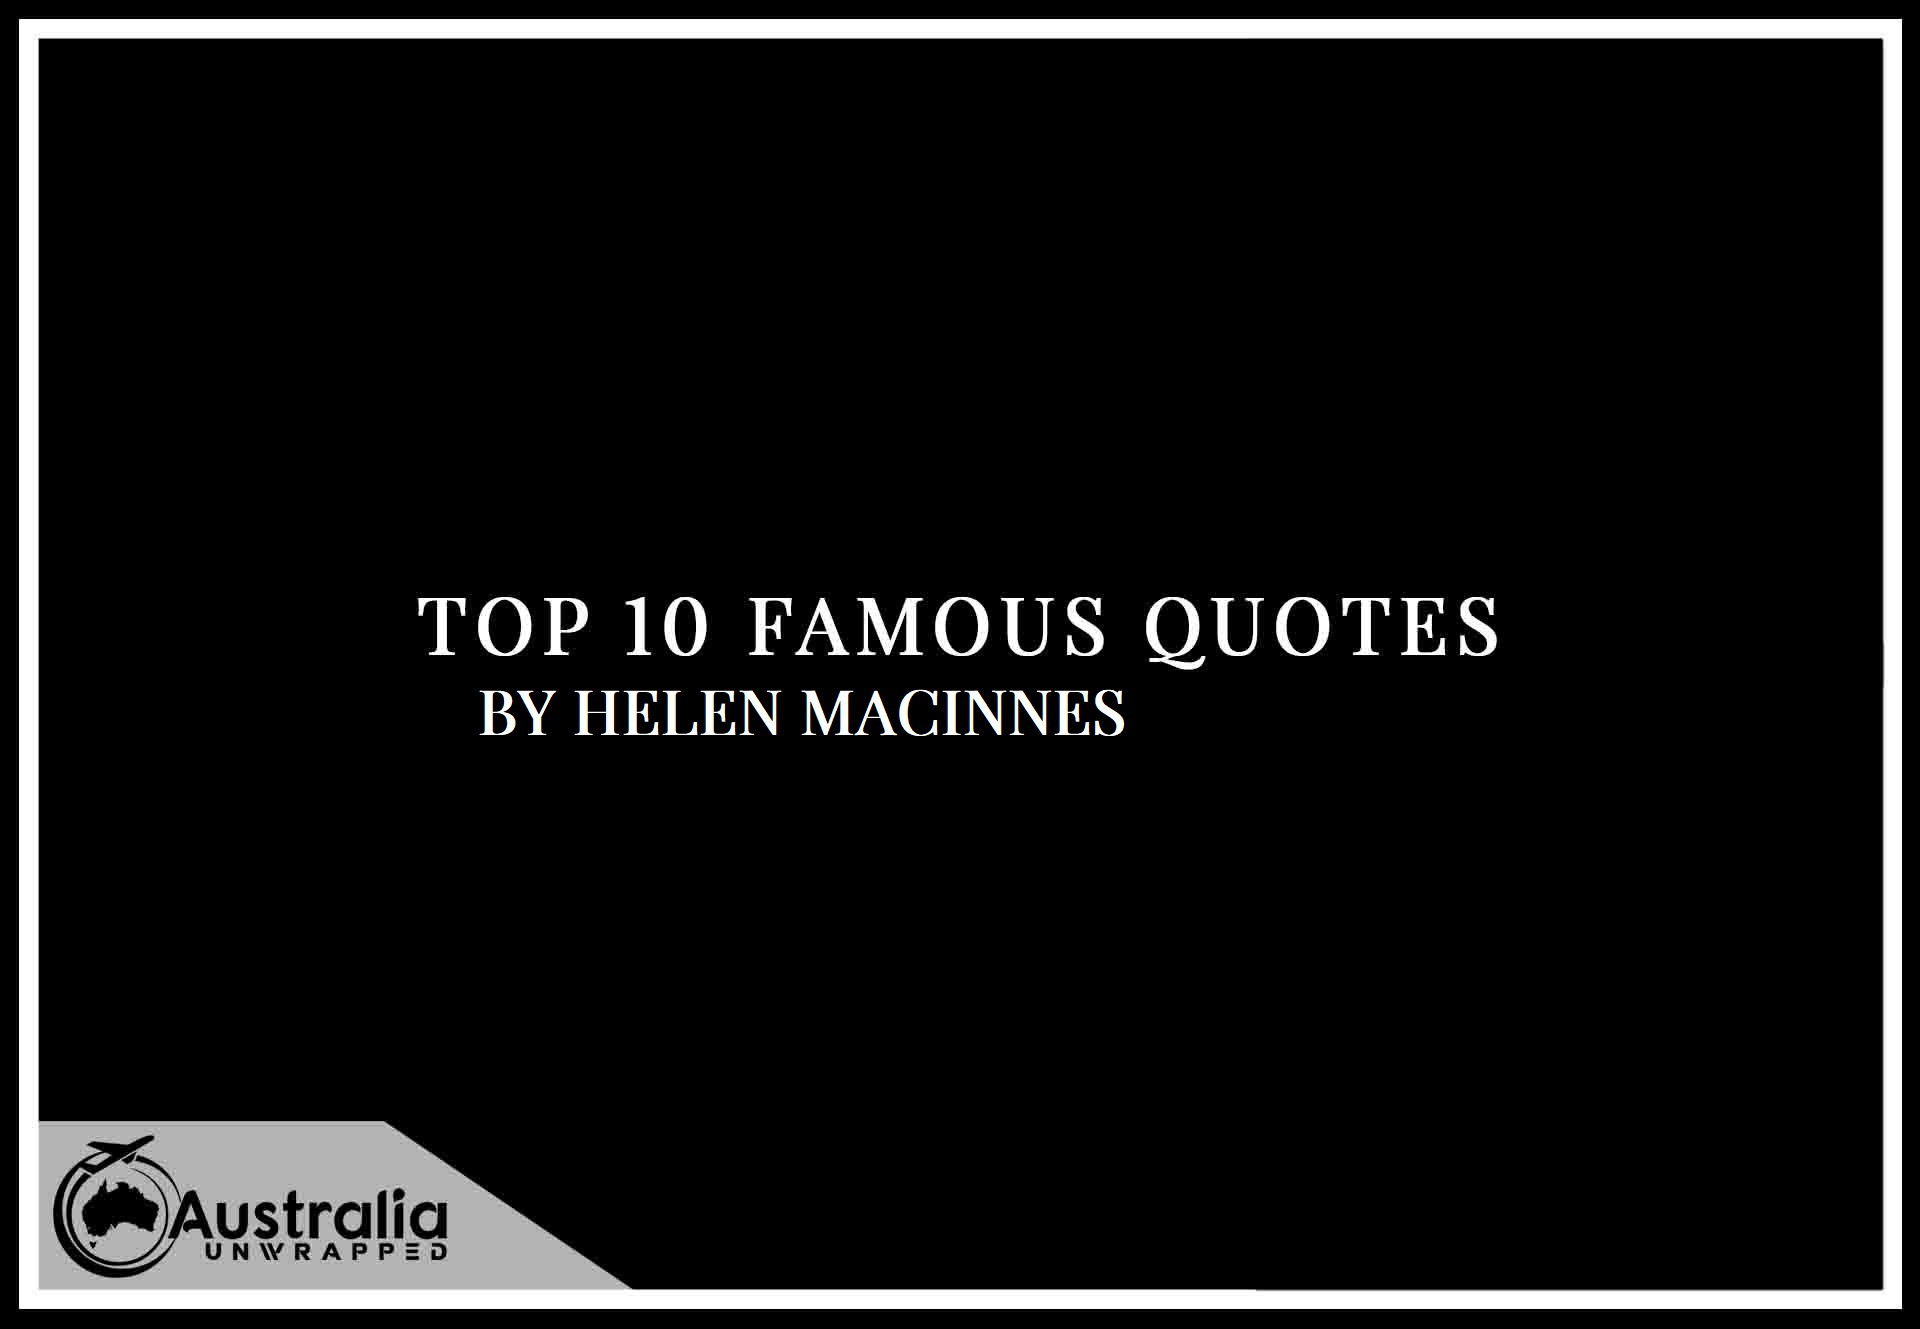 Top 10 Famous Quotes by Author Helen MacInnes